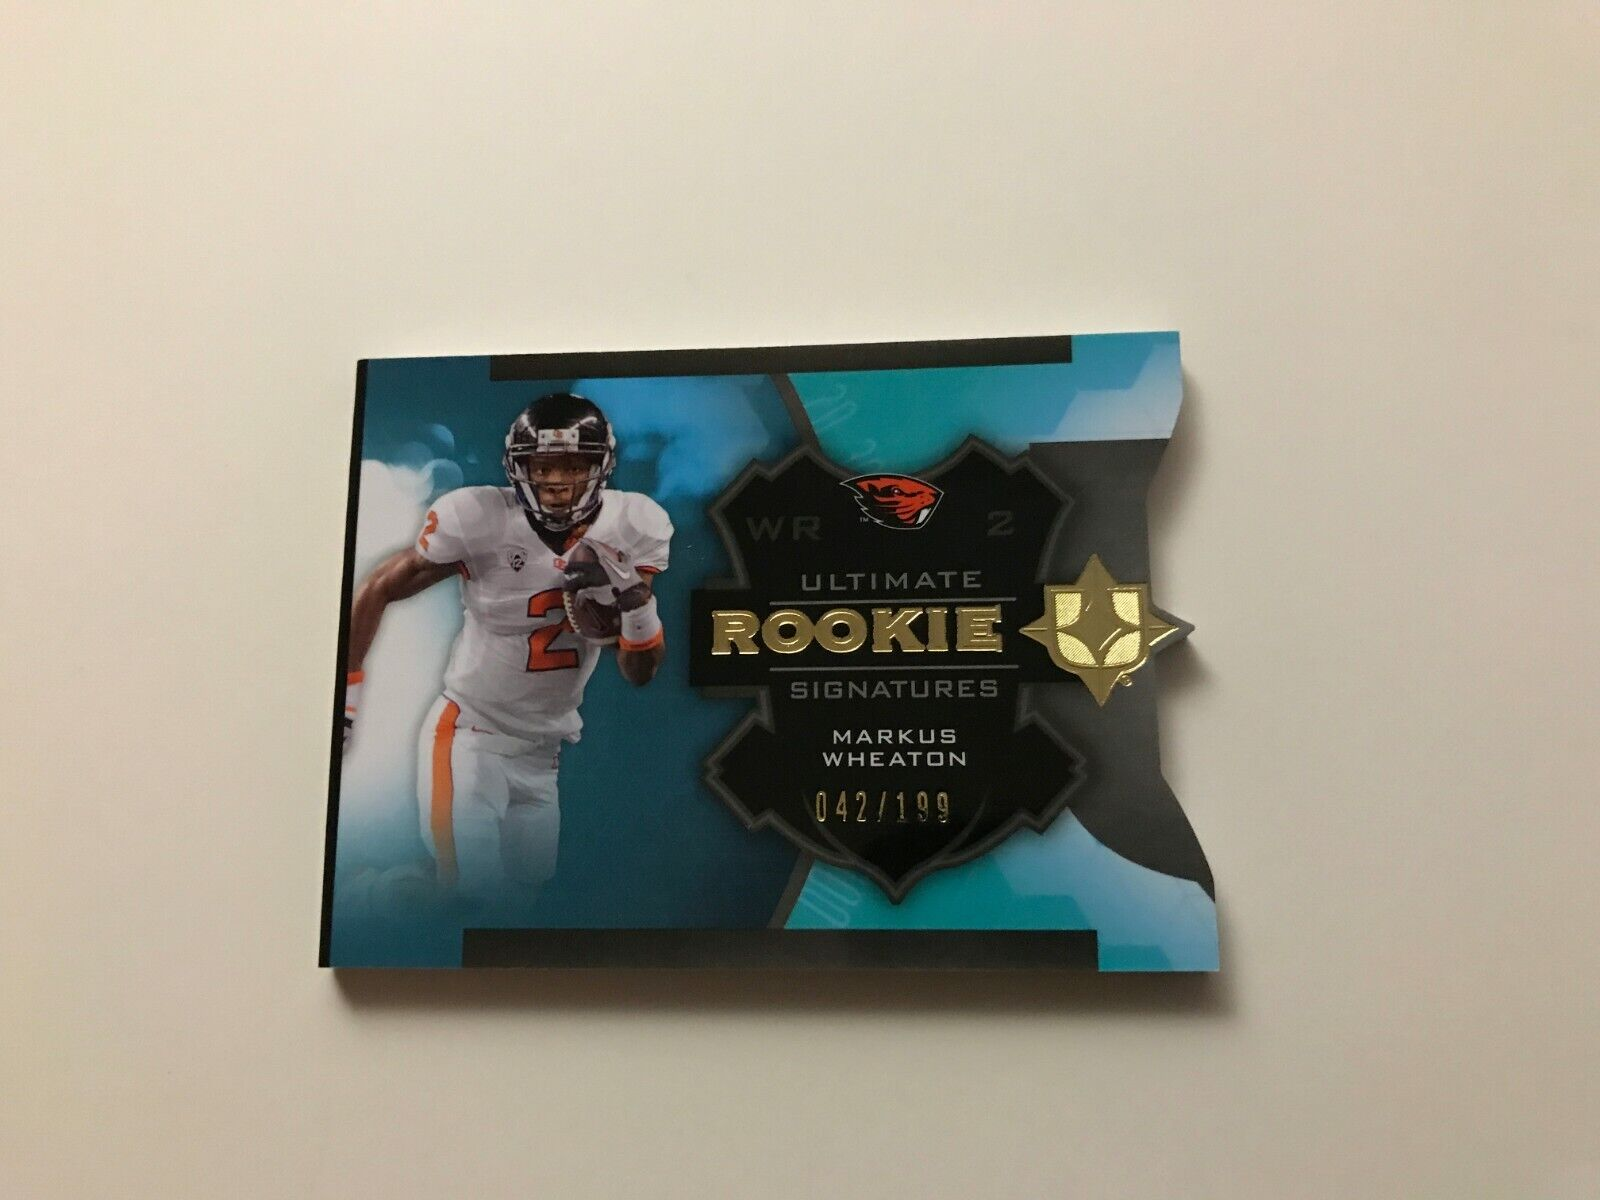 2013 UPPER DECK ULTIMATE COLLECTION MARKUS WHEATON RC AUTO 42/199 BOOKLET - $4.99